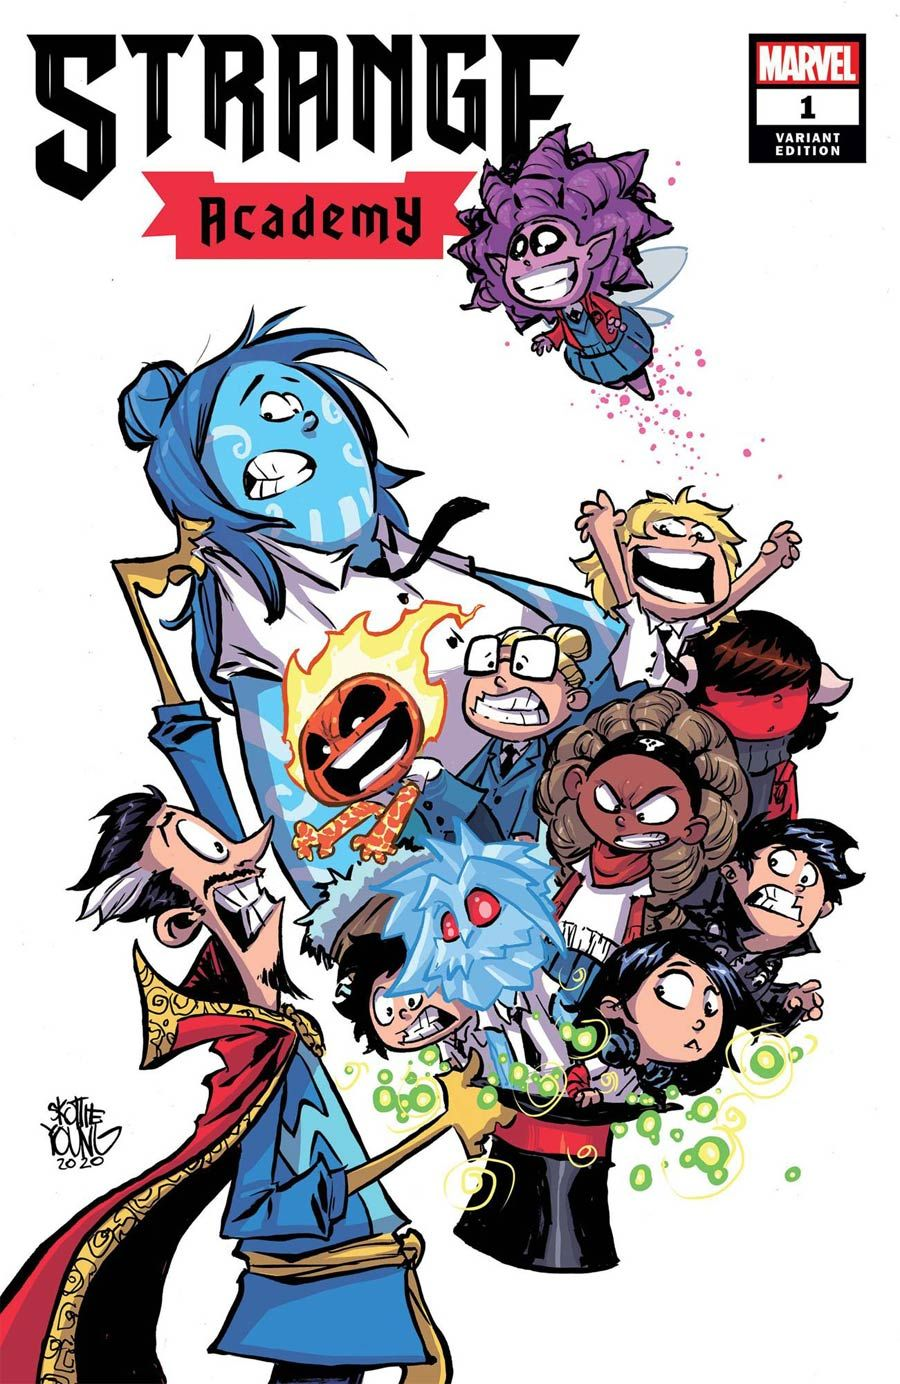 Angela Maiore Porn strange academy #1 cover e variant skottie young cover in